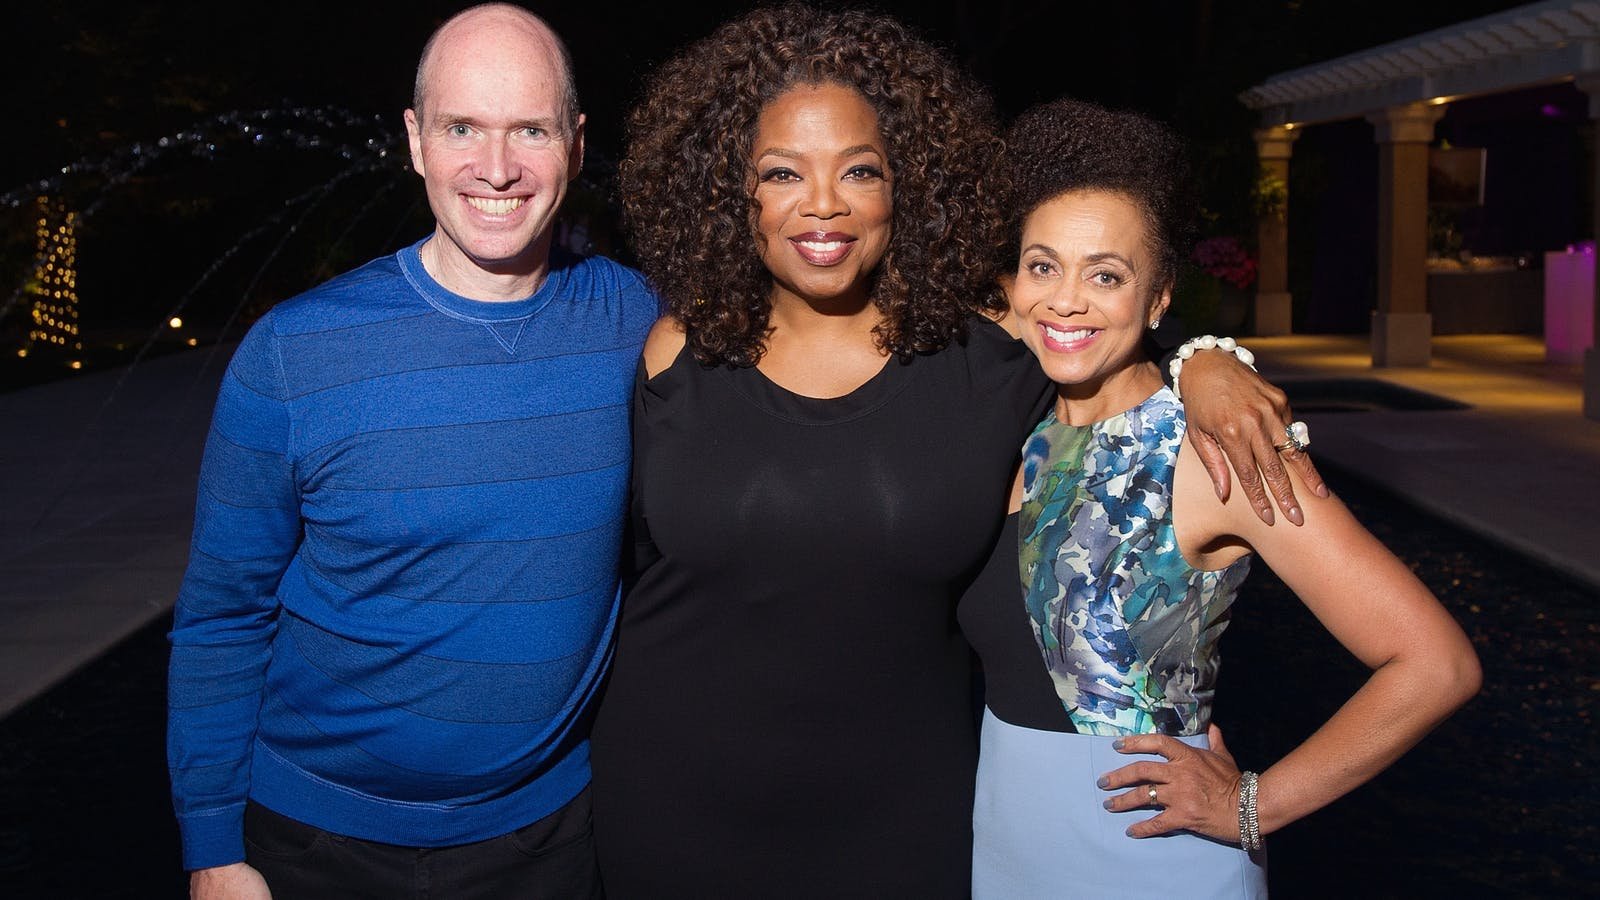 Ben Horowitz with his wife Felicia and Oprah Winfrey, center. Photo by AP.